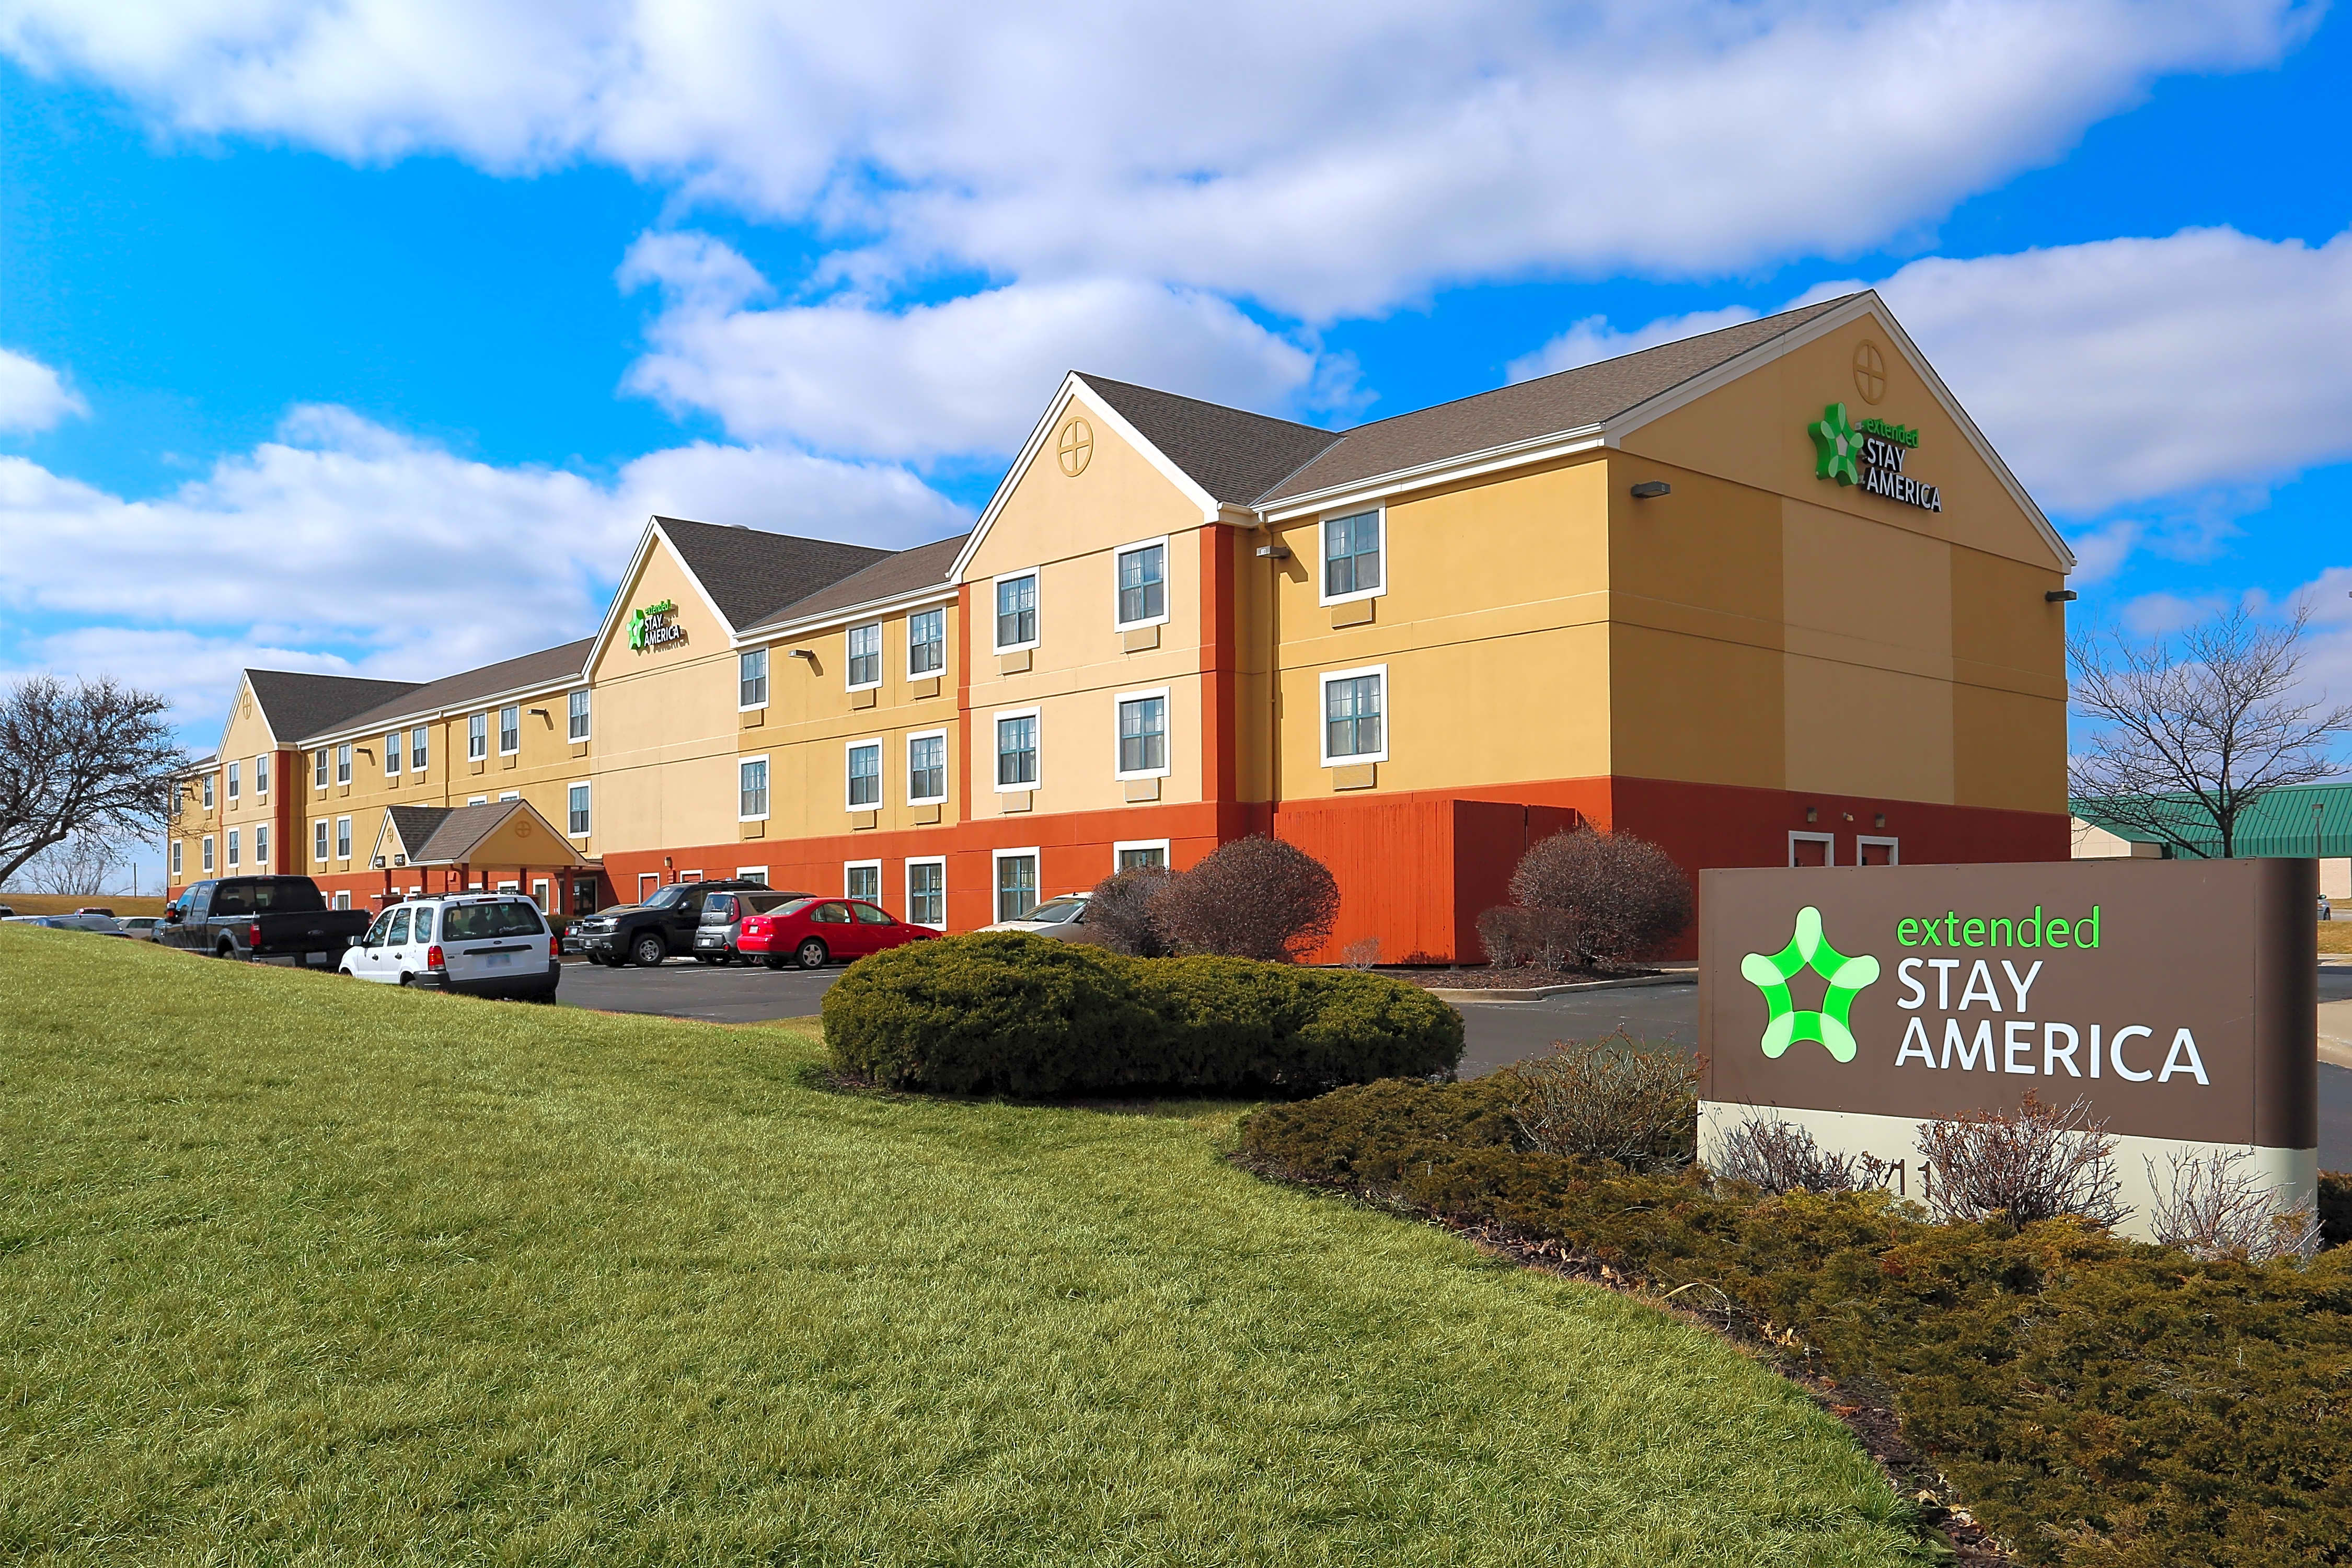 Apartments Near Platte City Furnished Studio - Kansas City - Airport for Platte City Students in Platte City, MO